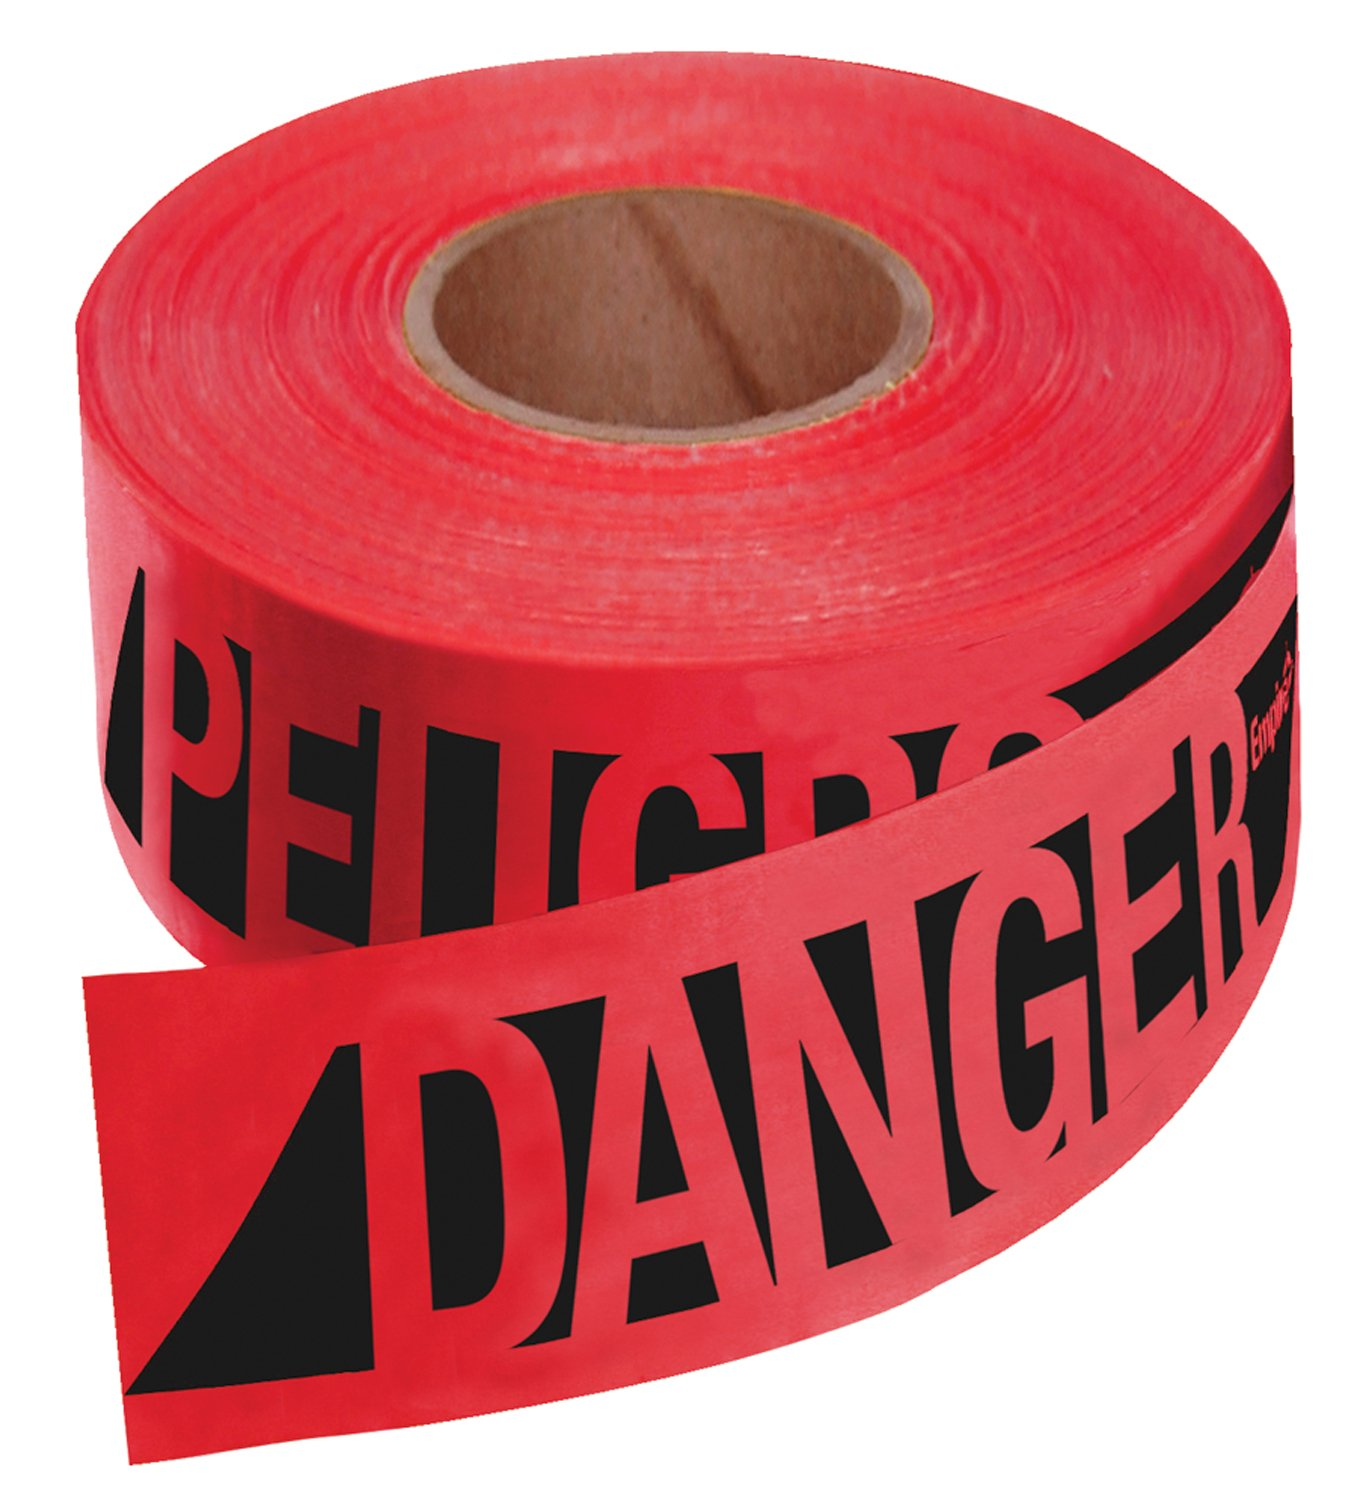 Empire 76-0604 Reinforced Construction Grade Danger/Peligro Tape Red with Black Ink, 500-Feet by 3-Inch by Empire Level